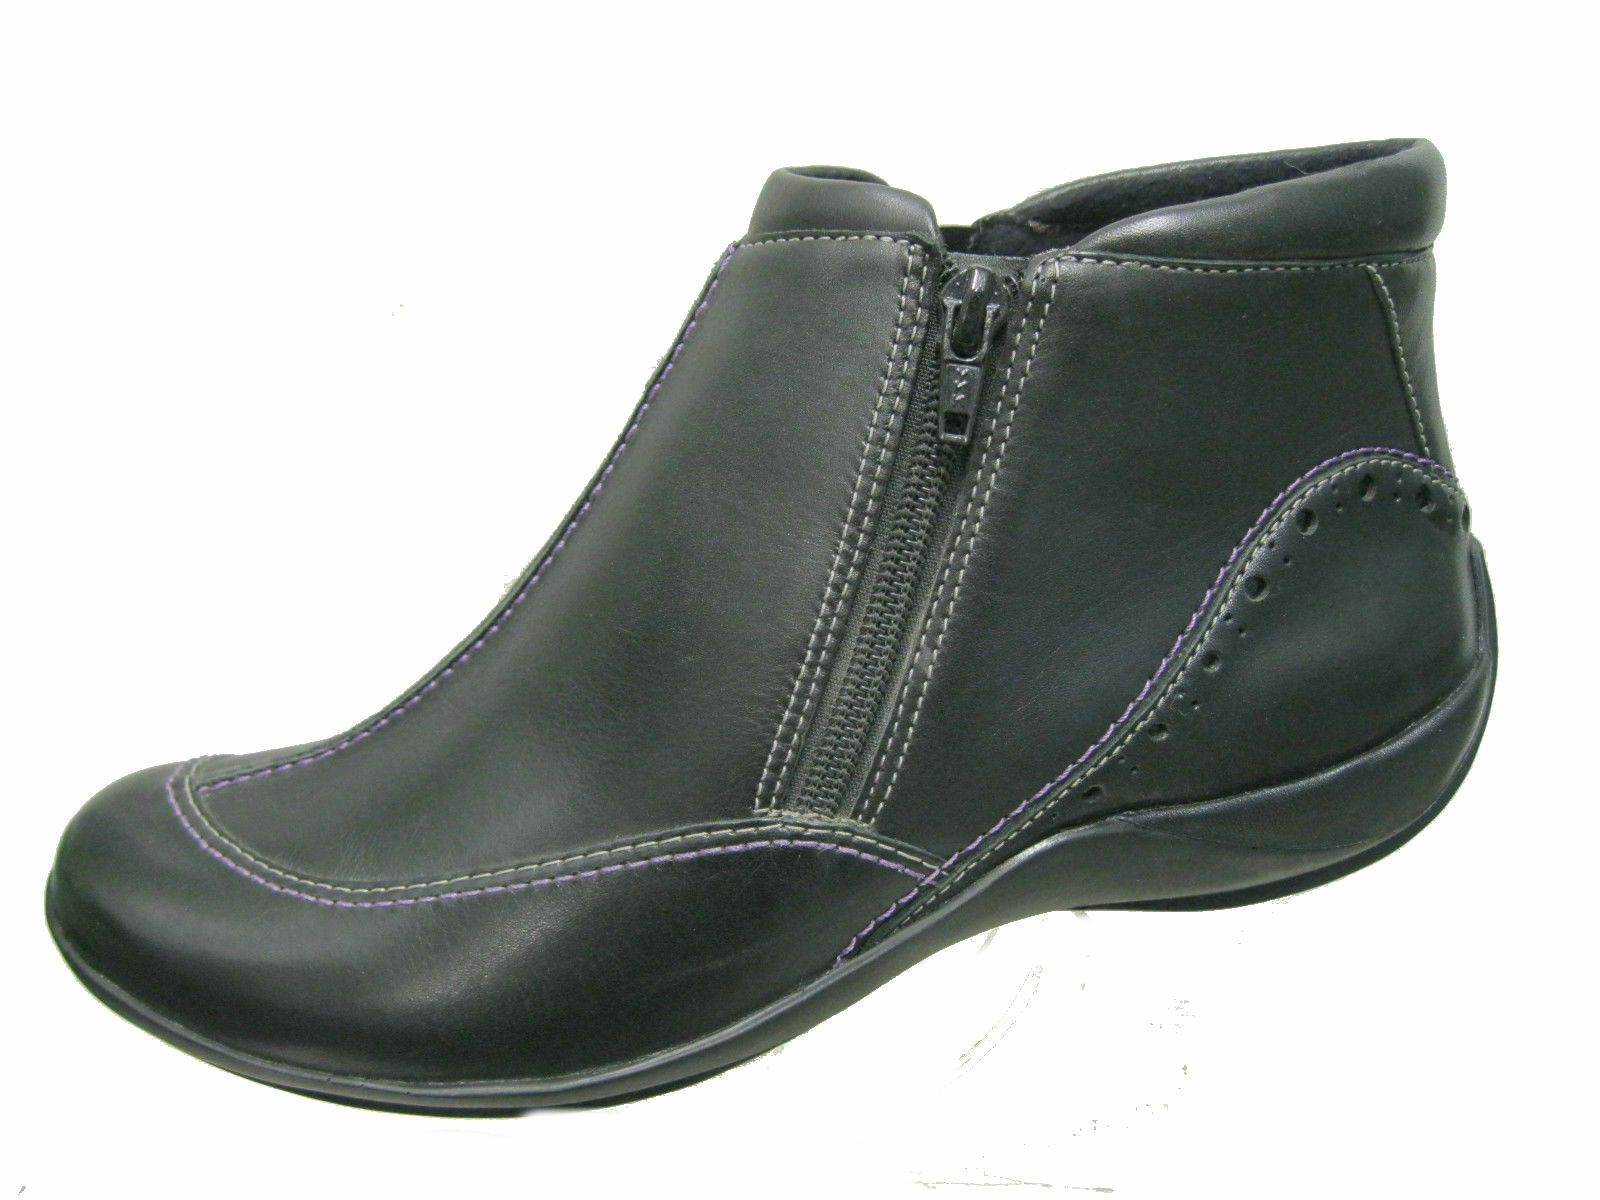 LADIES K BY CLARKS BLACK ANKLE BOOT